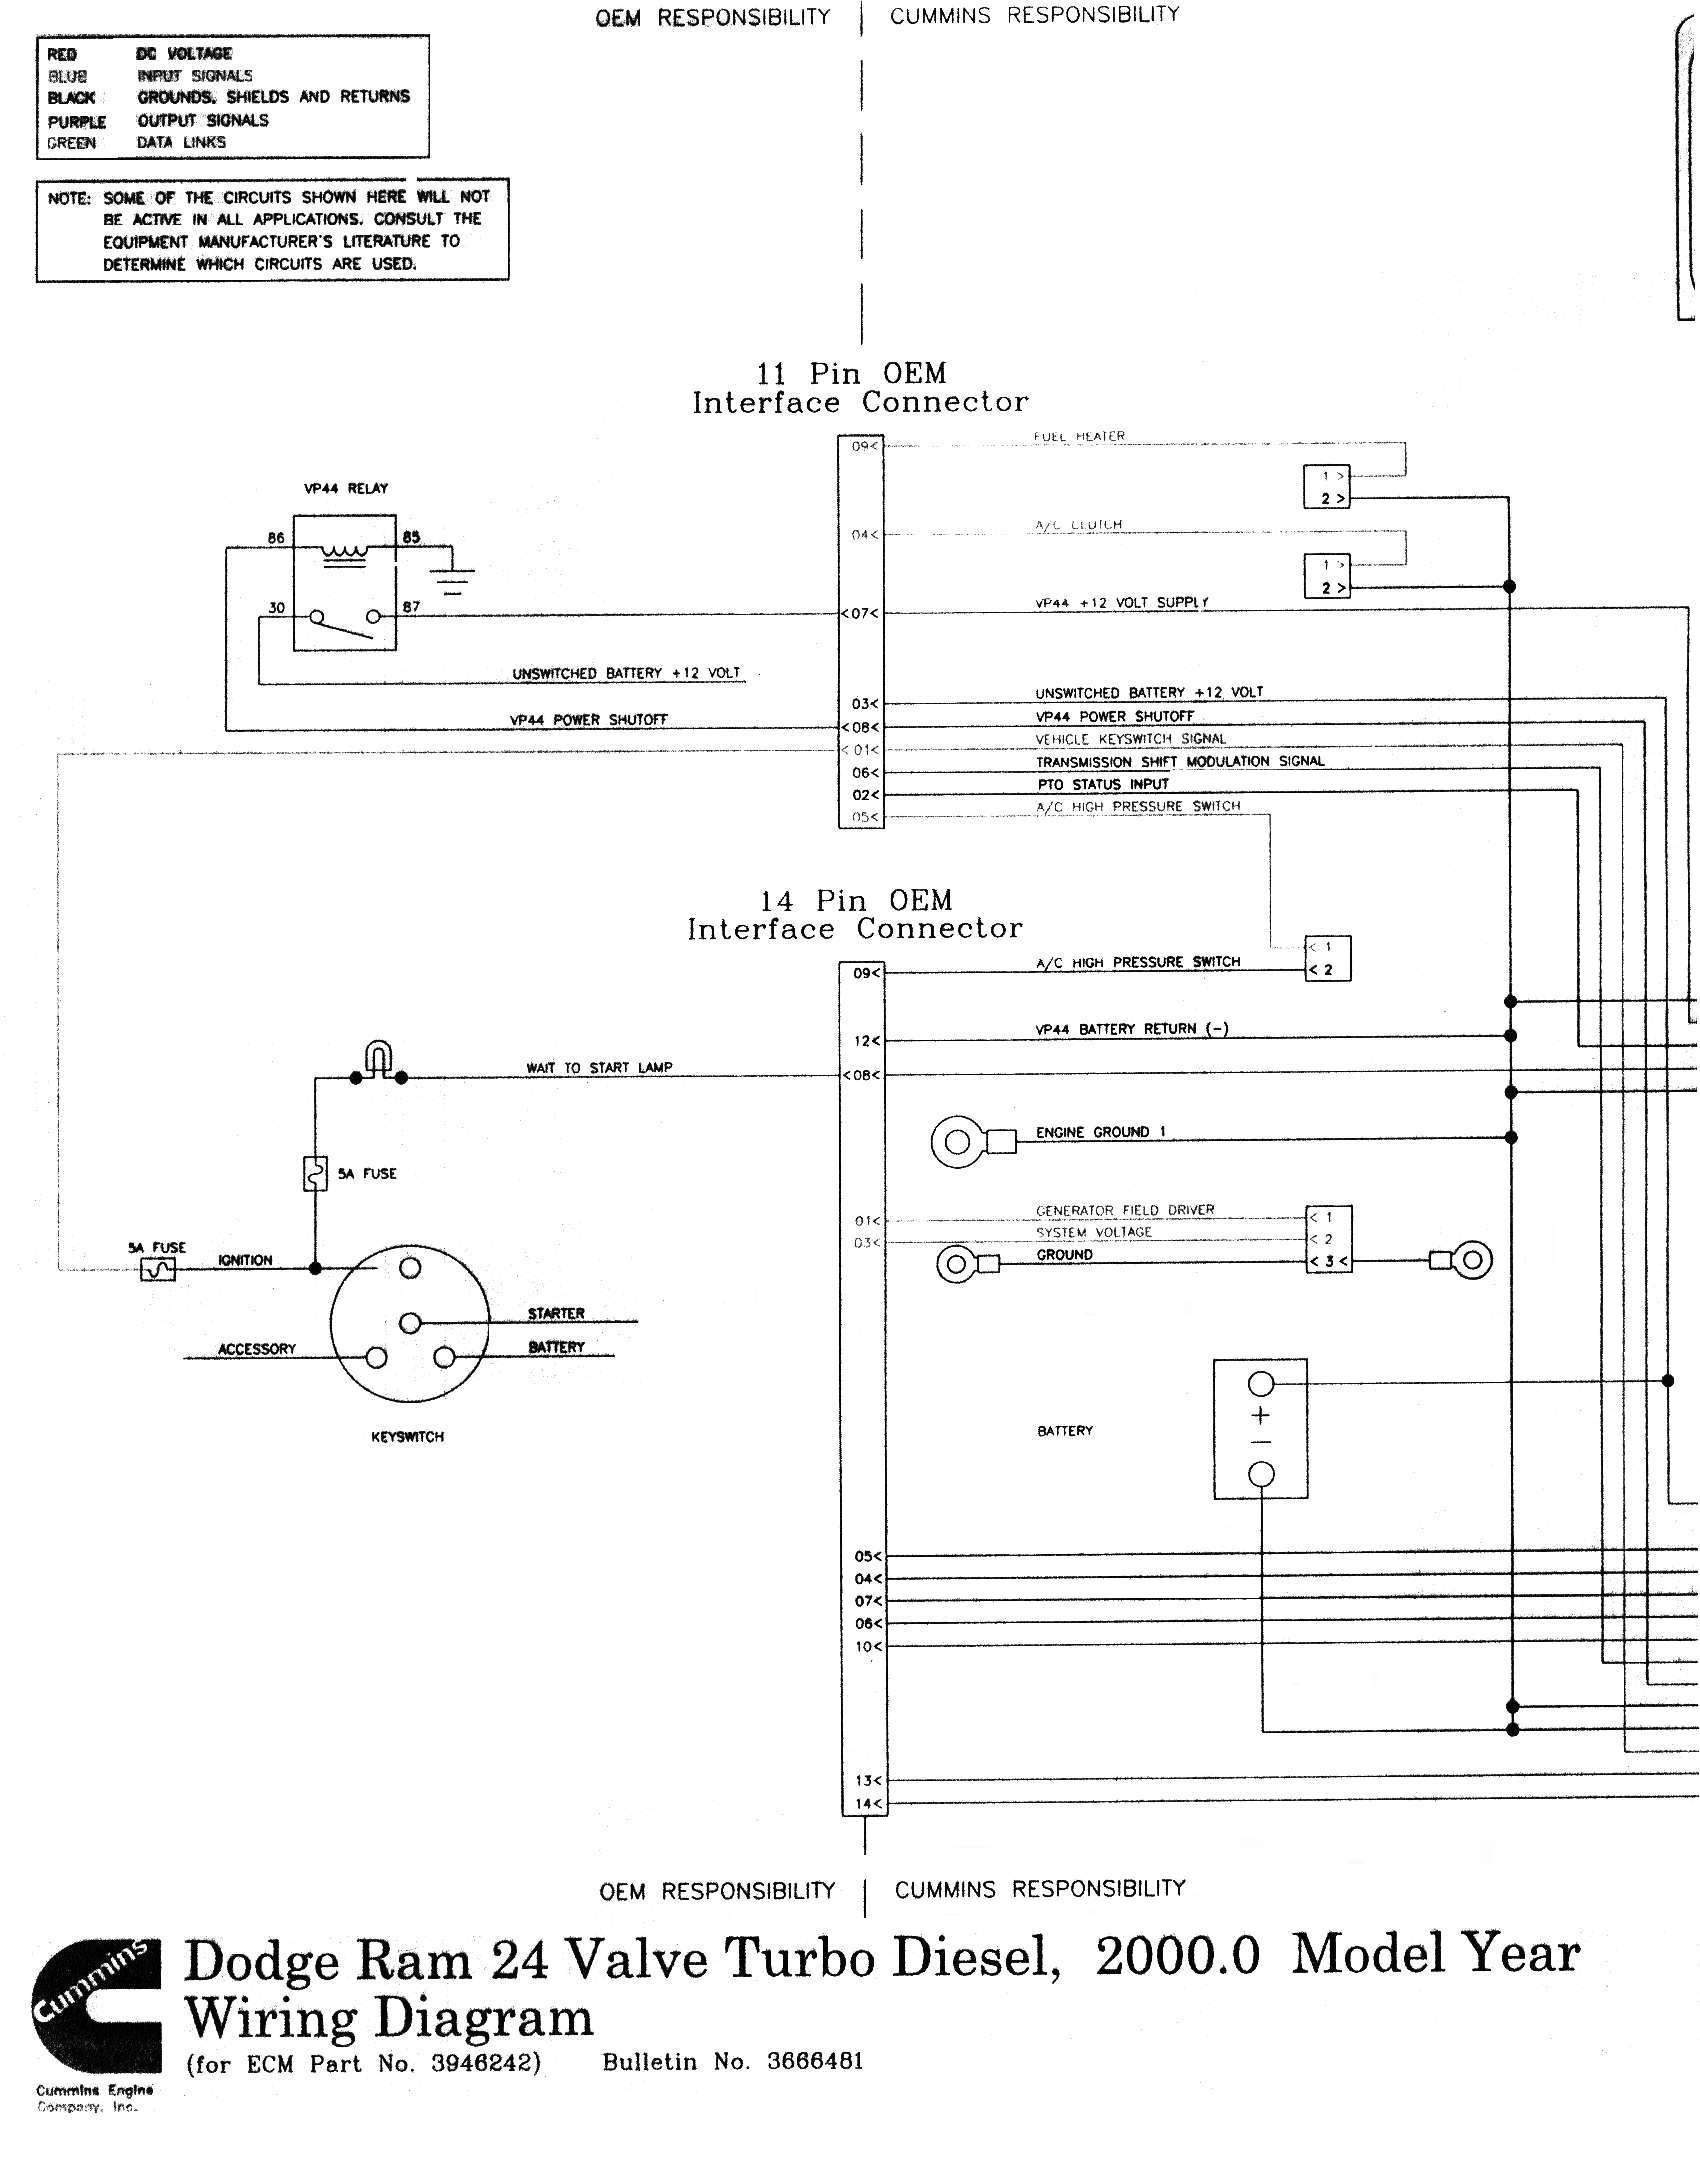 cummins fan clutch wiring diagram - 2005 dodge cummins ecm wiring diagram  wire center u2022 rh